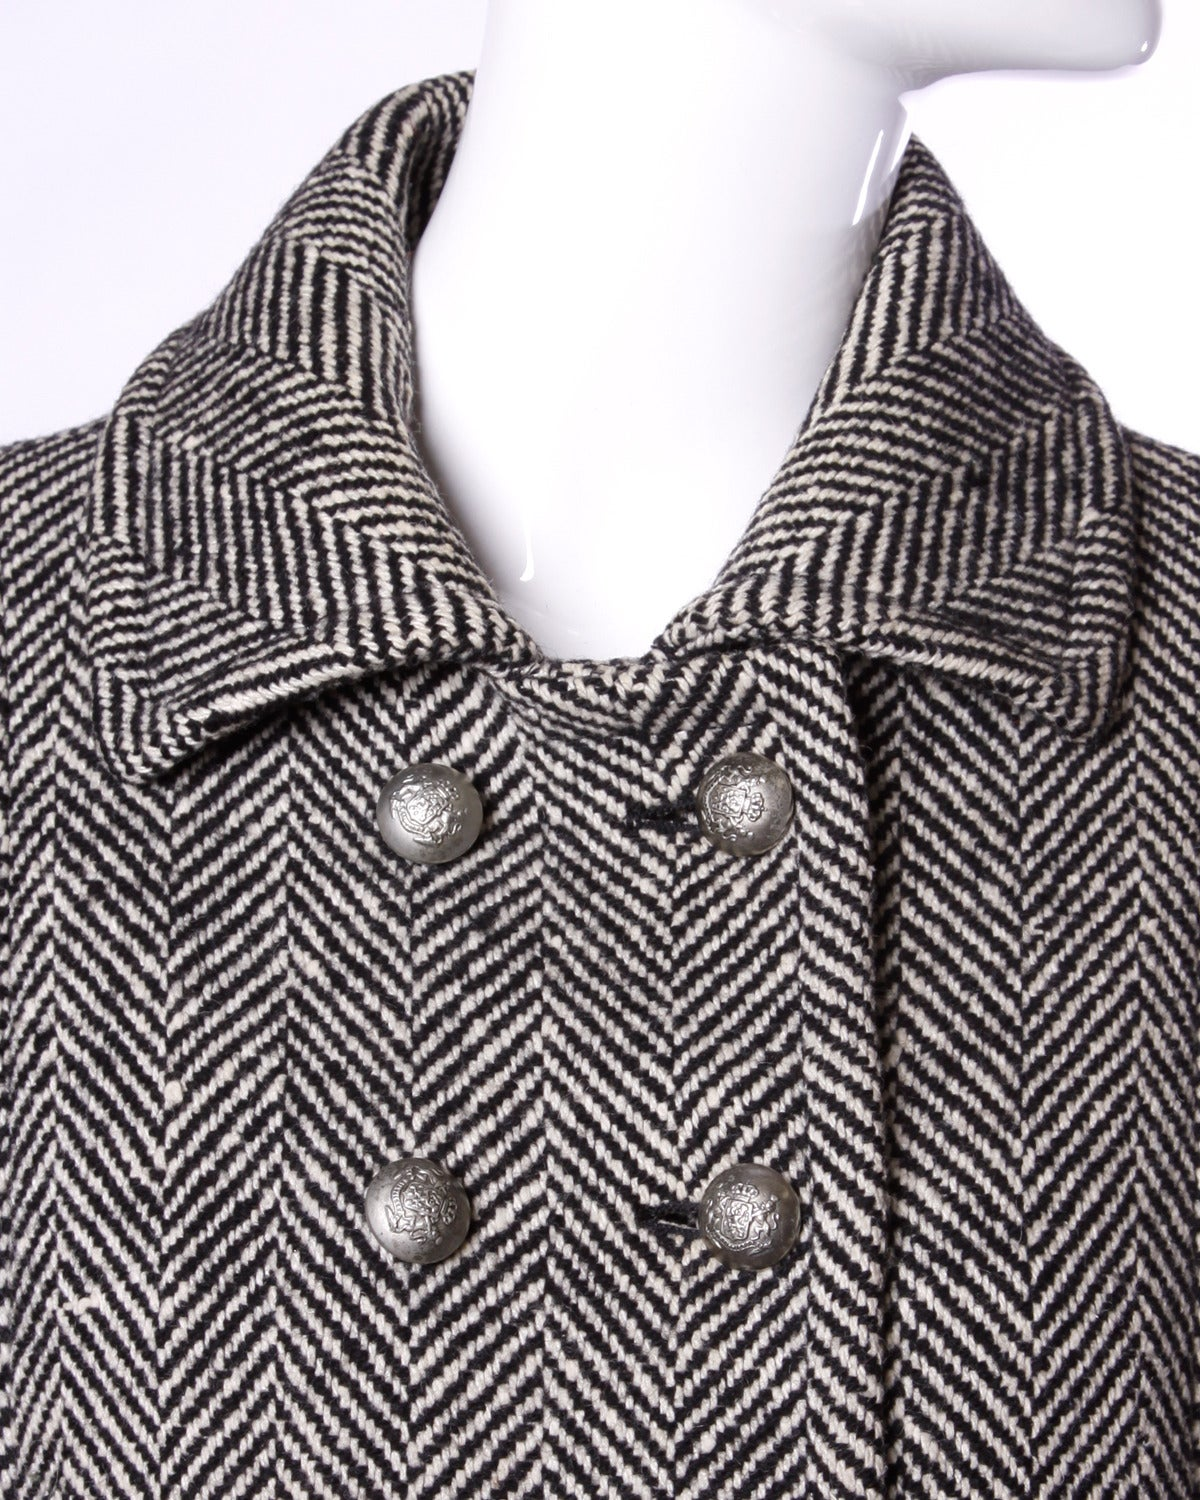 Gorgeous black and white military-inspired herringbone coat by Jean Louis Scherrer for Marshall Field & Company. Heavy silvertone double breasted buttons and classic shape. Hand tailoring and gorgeous quality.  Details:  Fully Lined Front